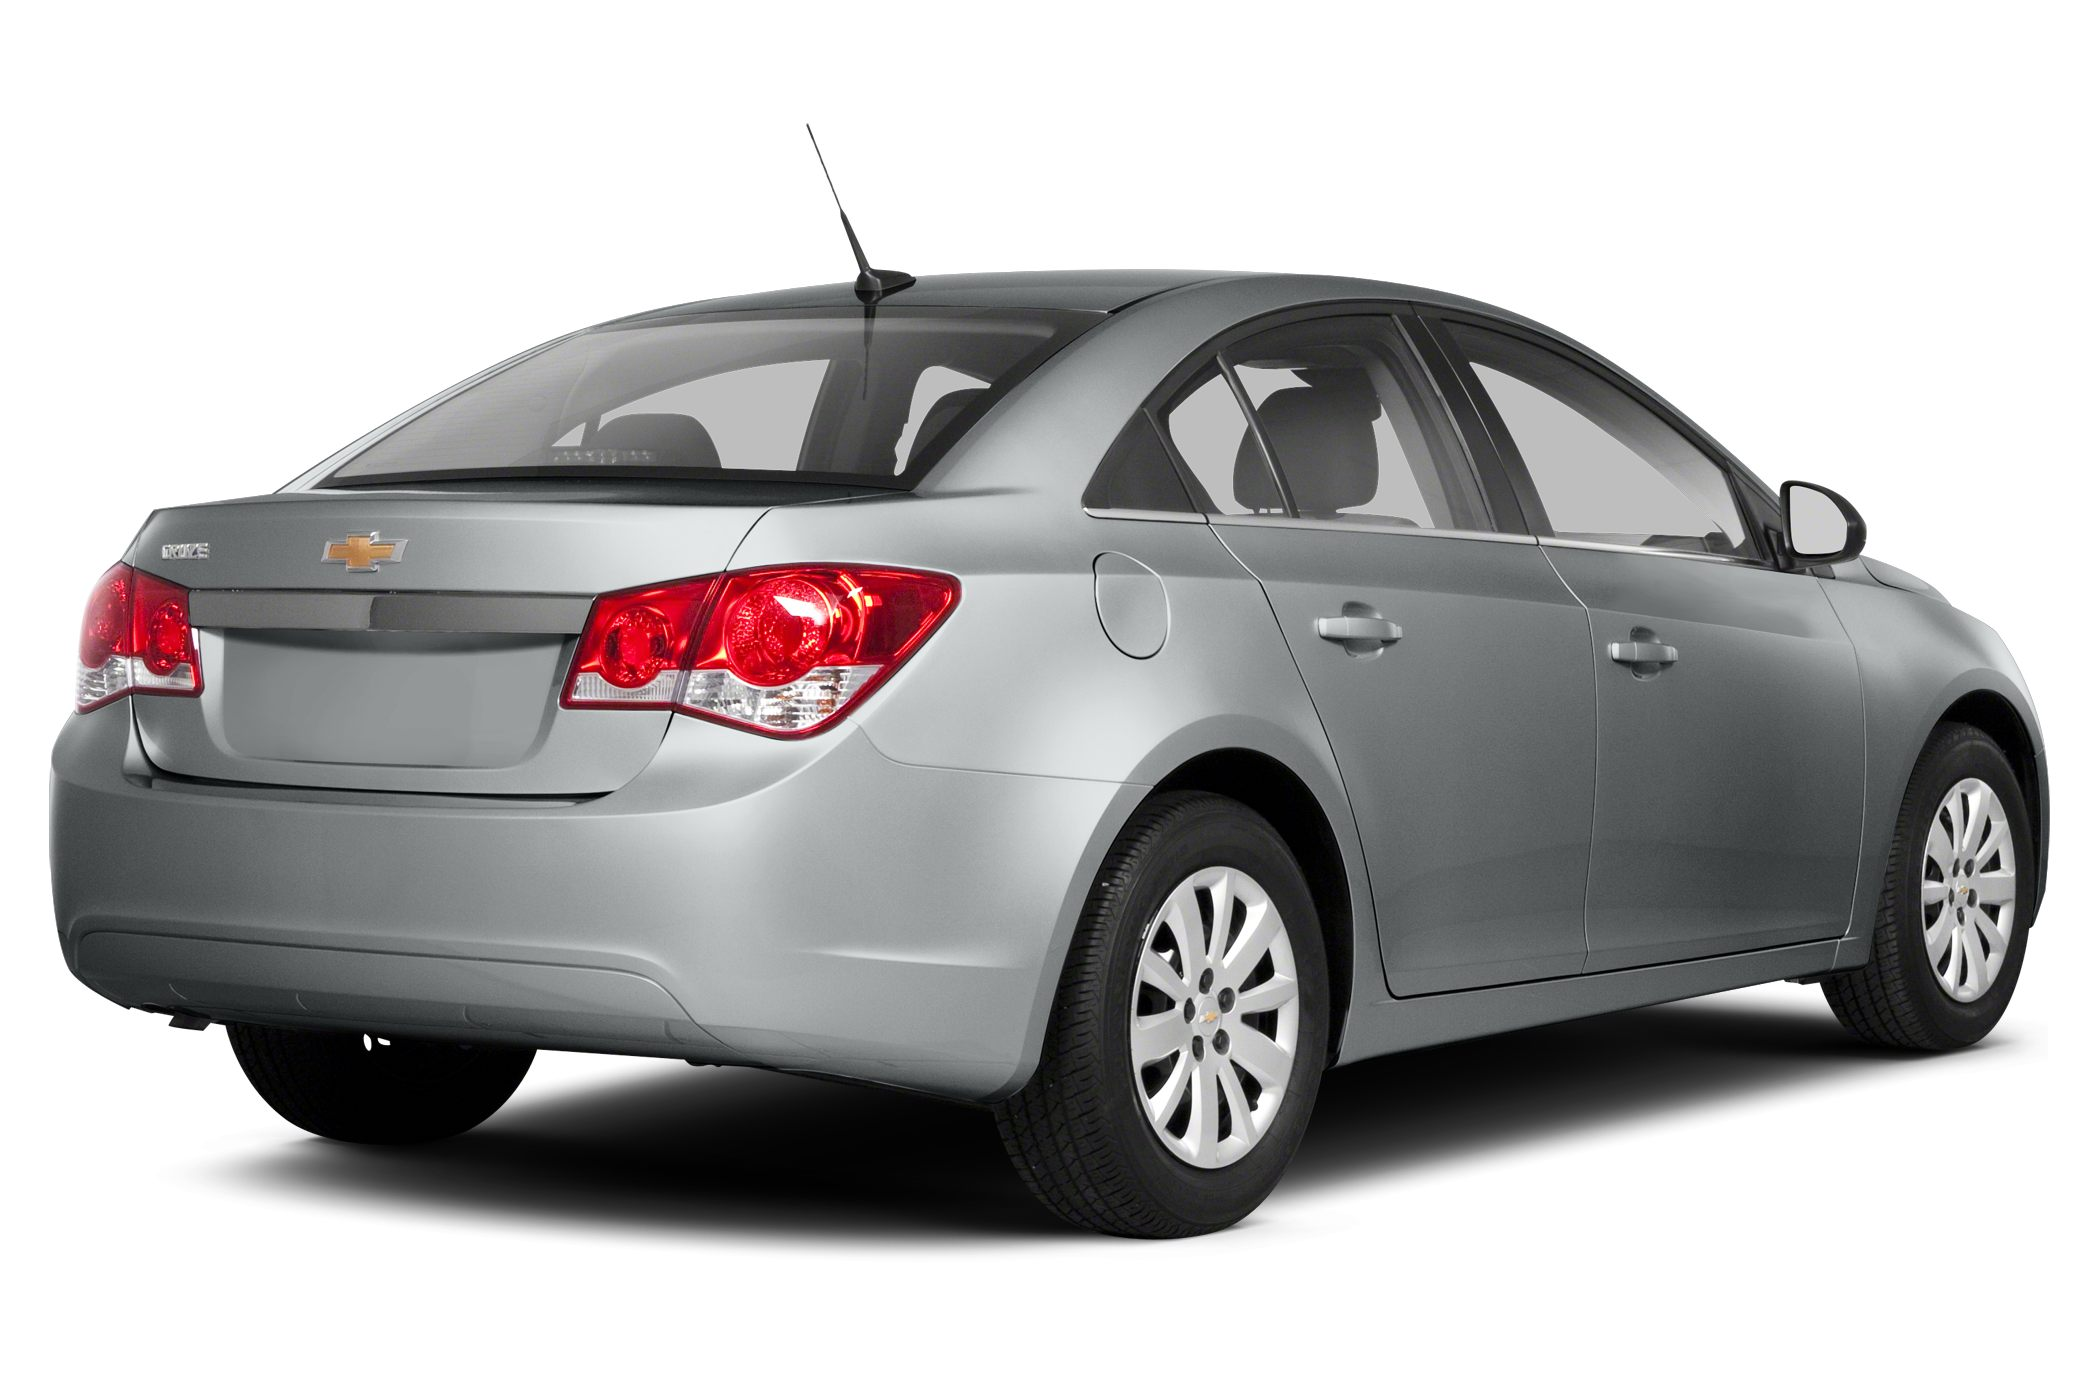 2013 chevrolet cruze 1lt cars and vehicles san. Black Bedroom Furniture Sets. Home Design Ideas